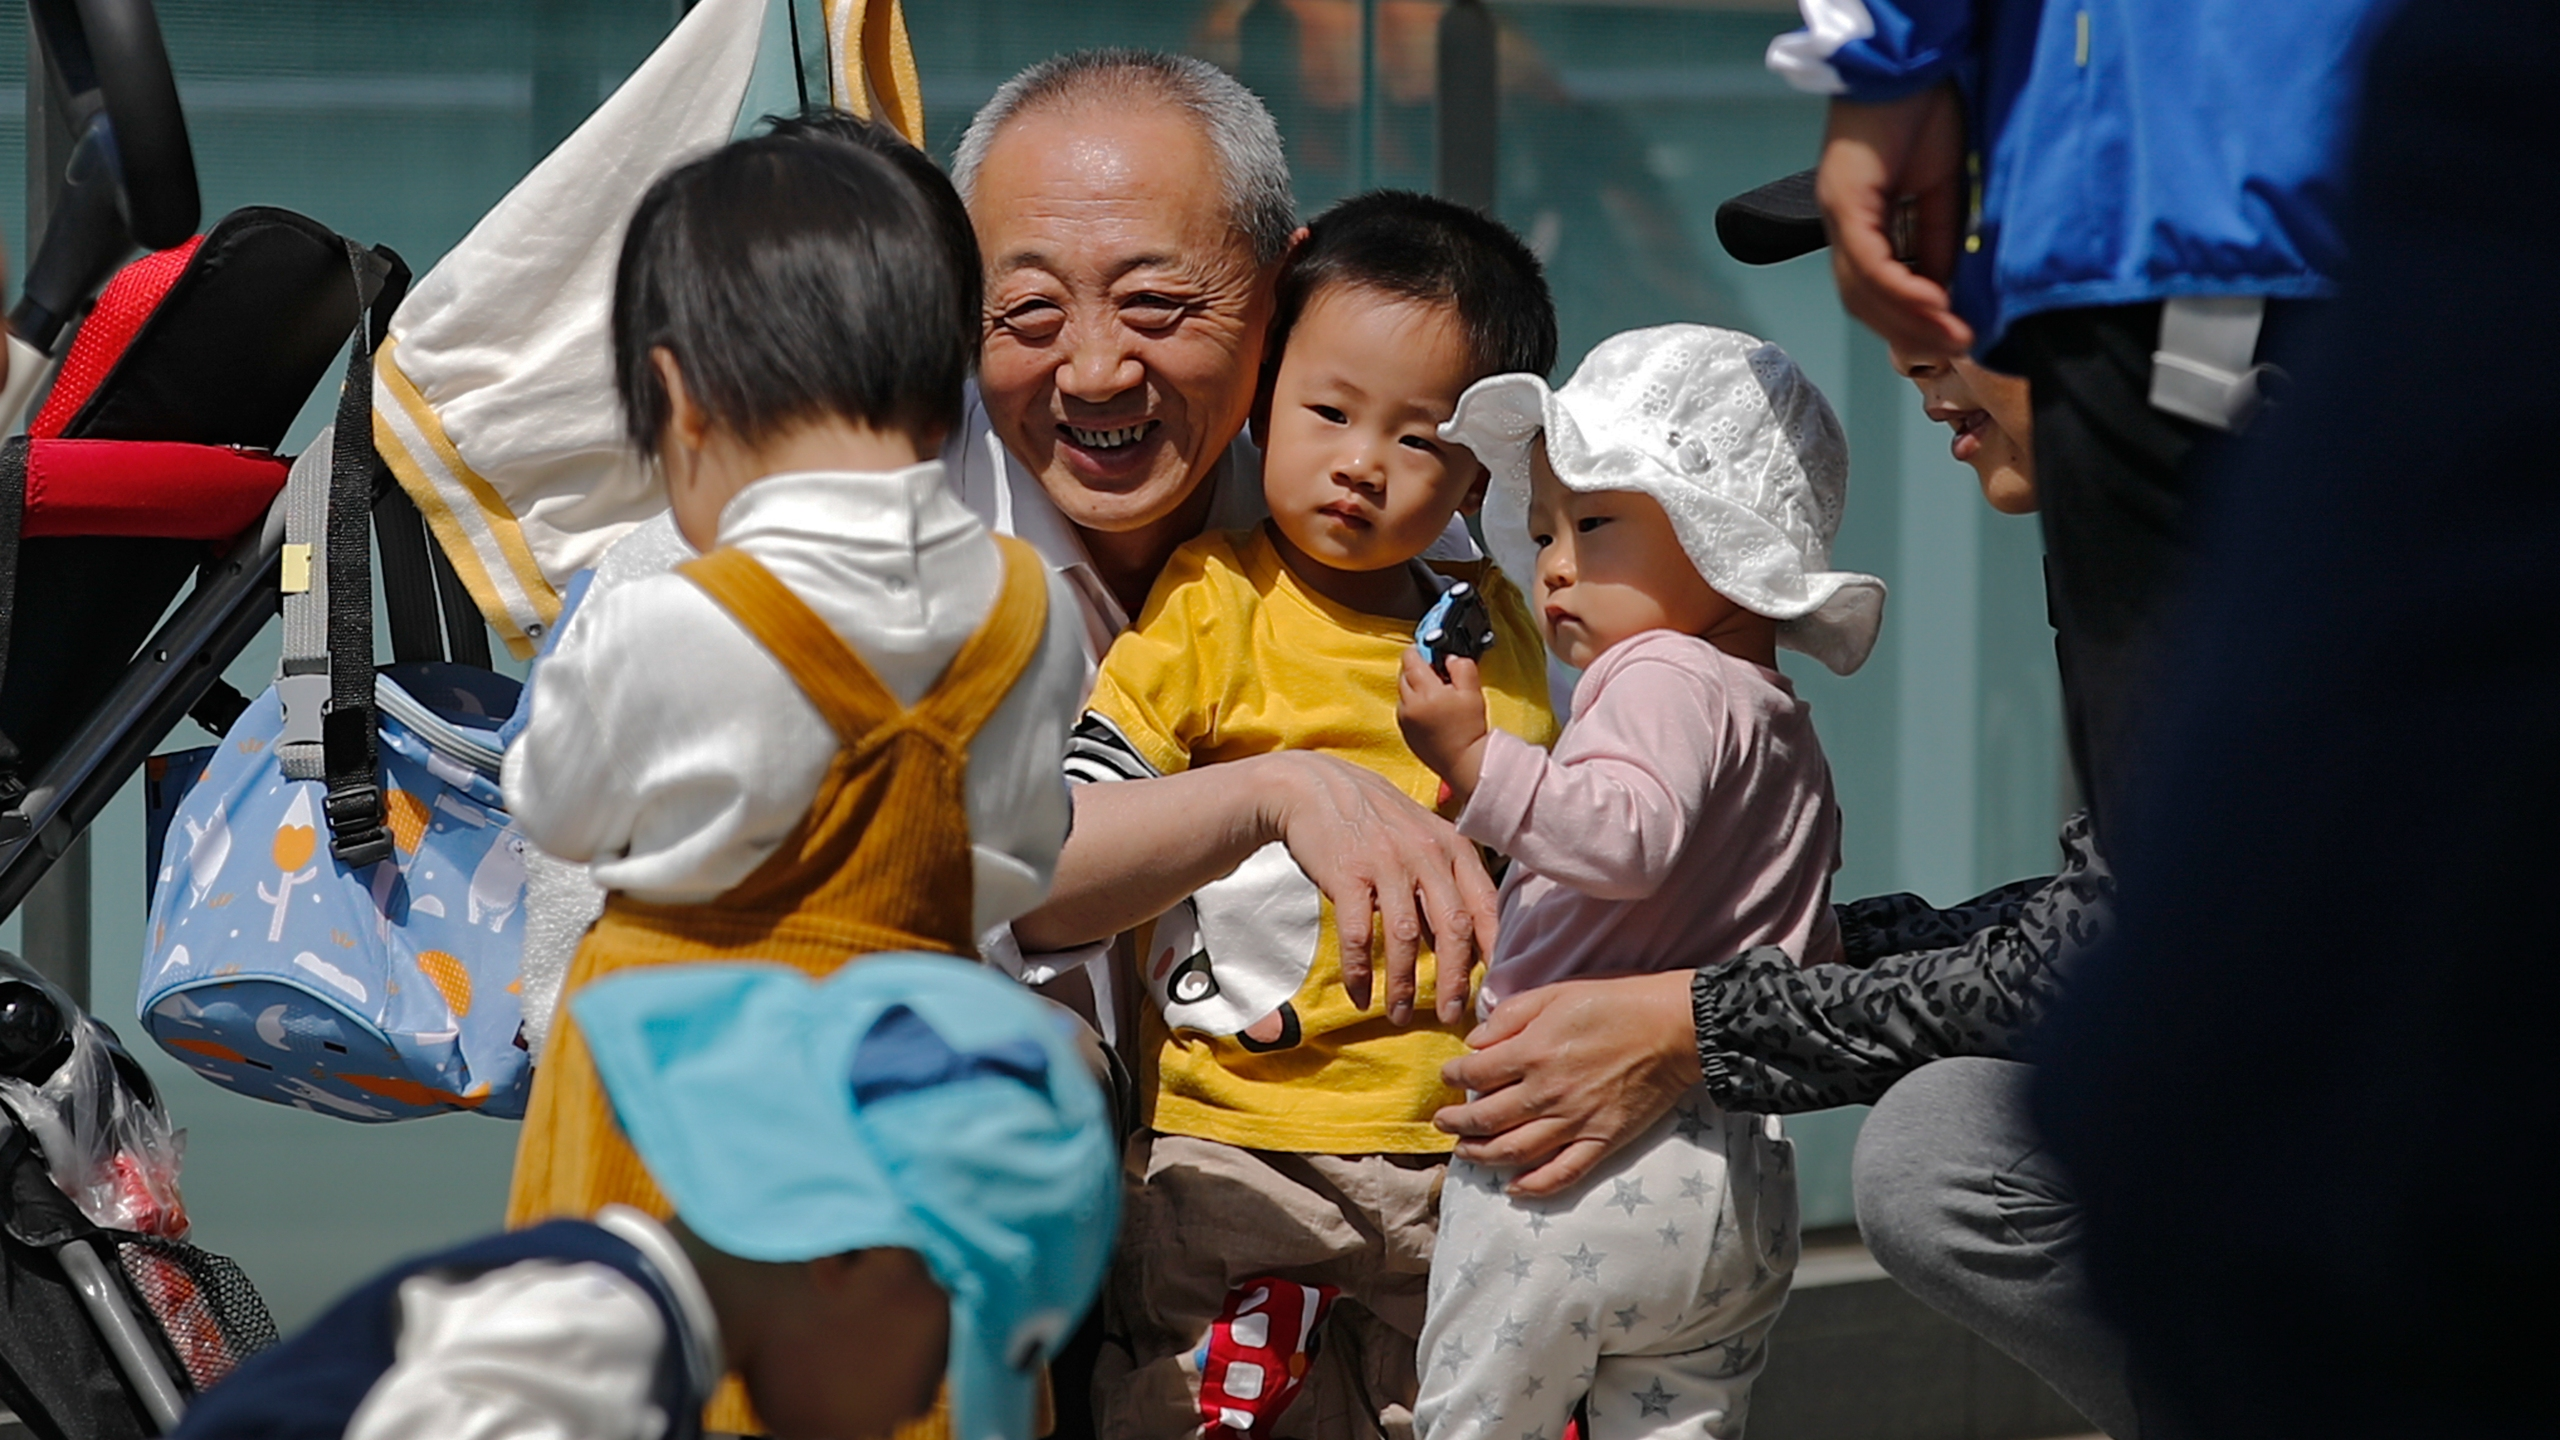 A man plays with children near a commercial office building in Beijing on May 10, 2021. China's ruling Communist Party will ease birth limits to allow all couples to have three children instead of two to cope with the rapid rise in the average age of its population, a state news agency said Monday, May 31. (AP Photo/Andy Wong)